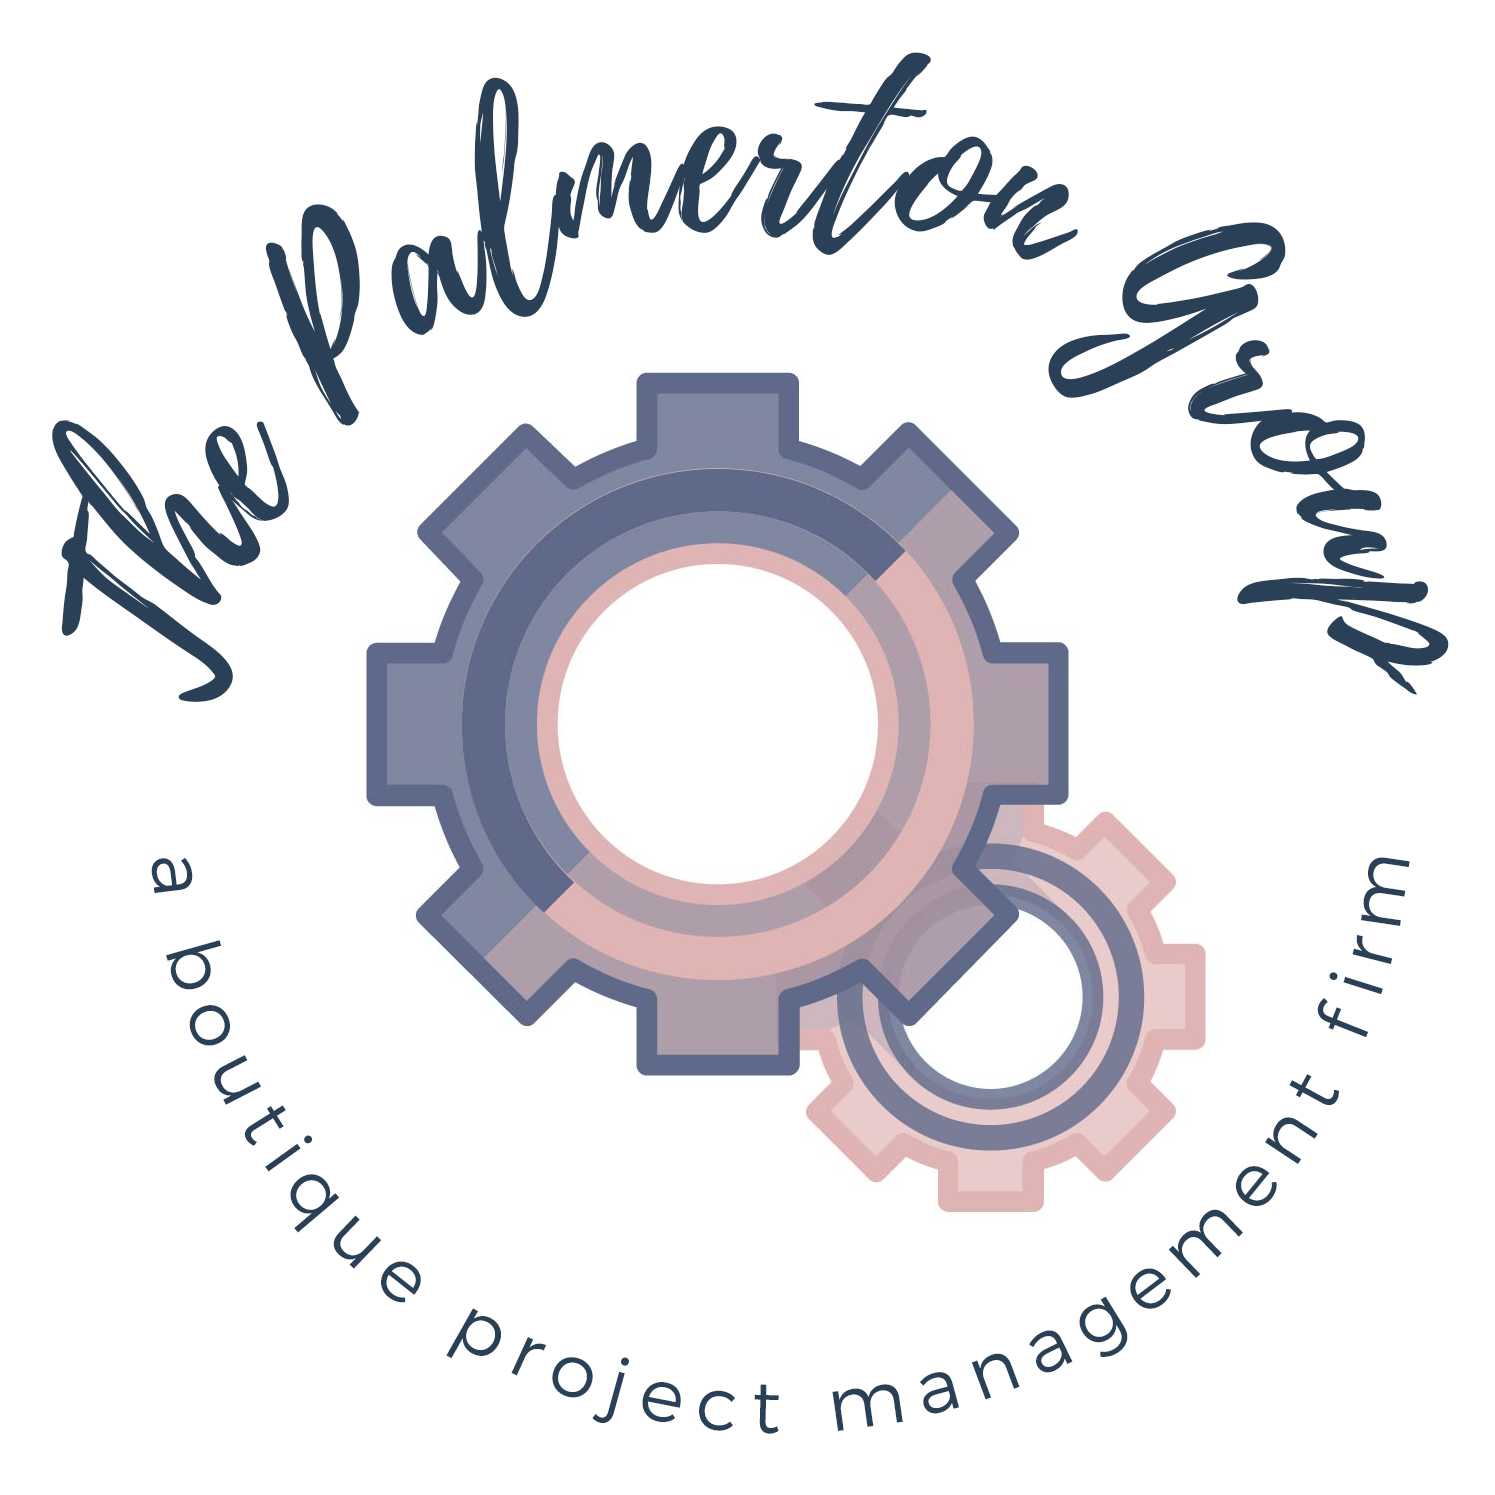 The Palmerton Group